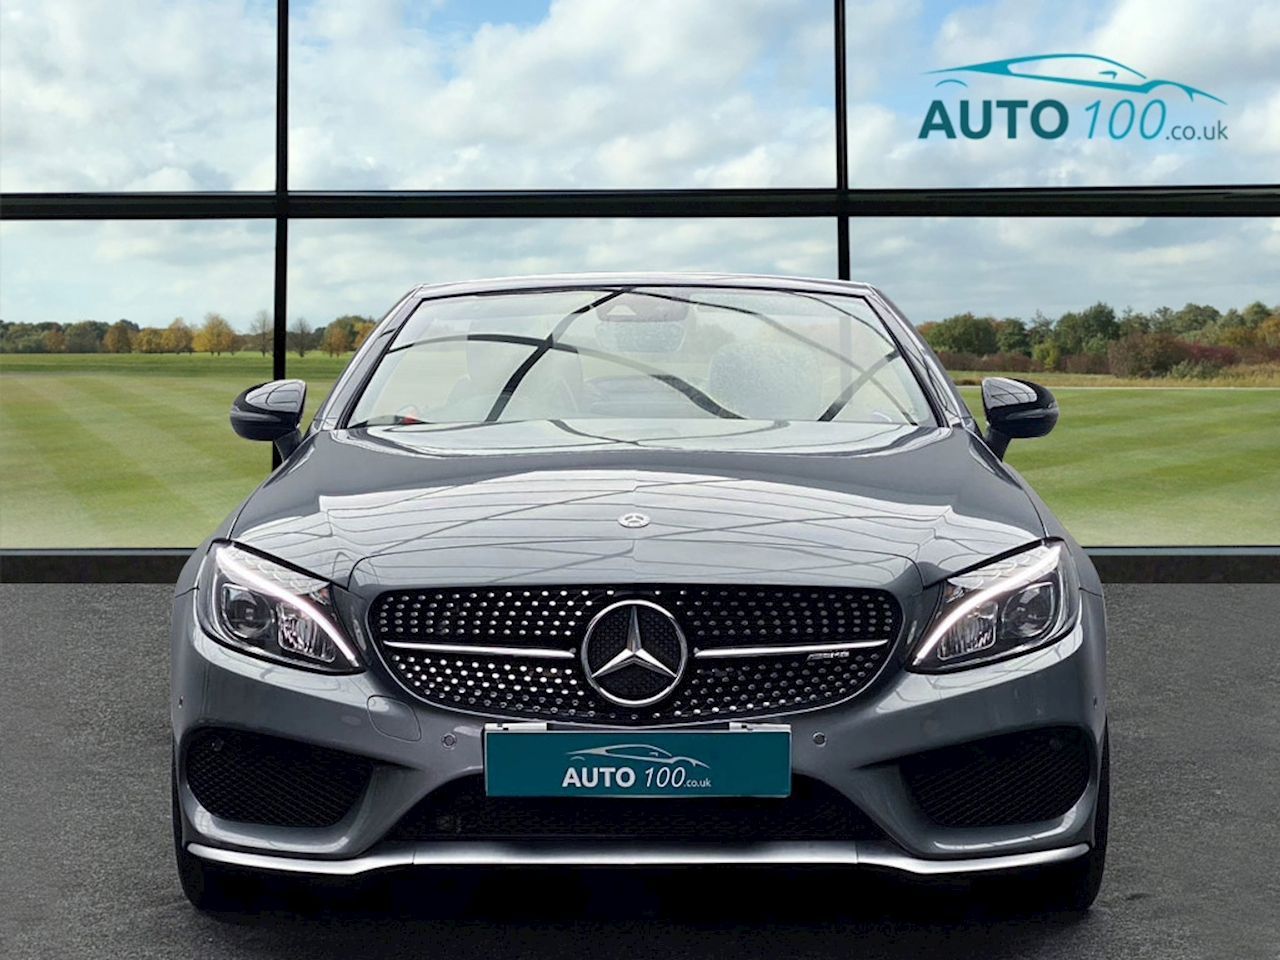 Mercedes-Benz C Class AMG Cabriolet 3.0 G-Tronic+ Petrol